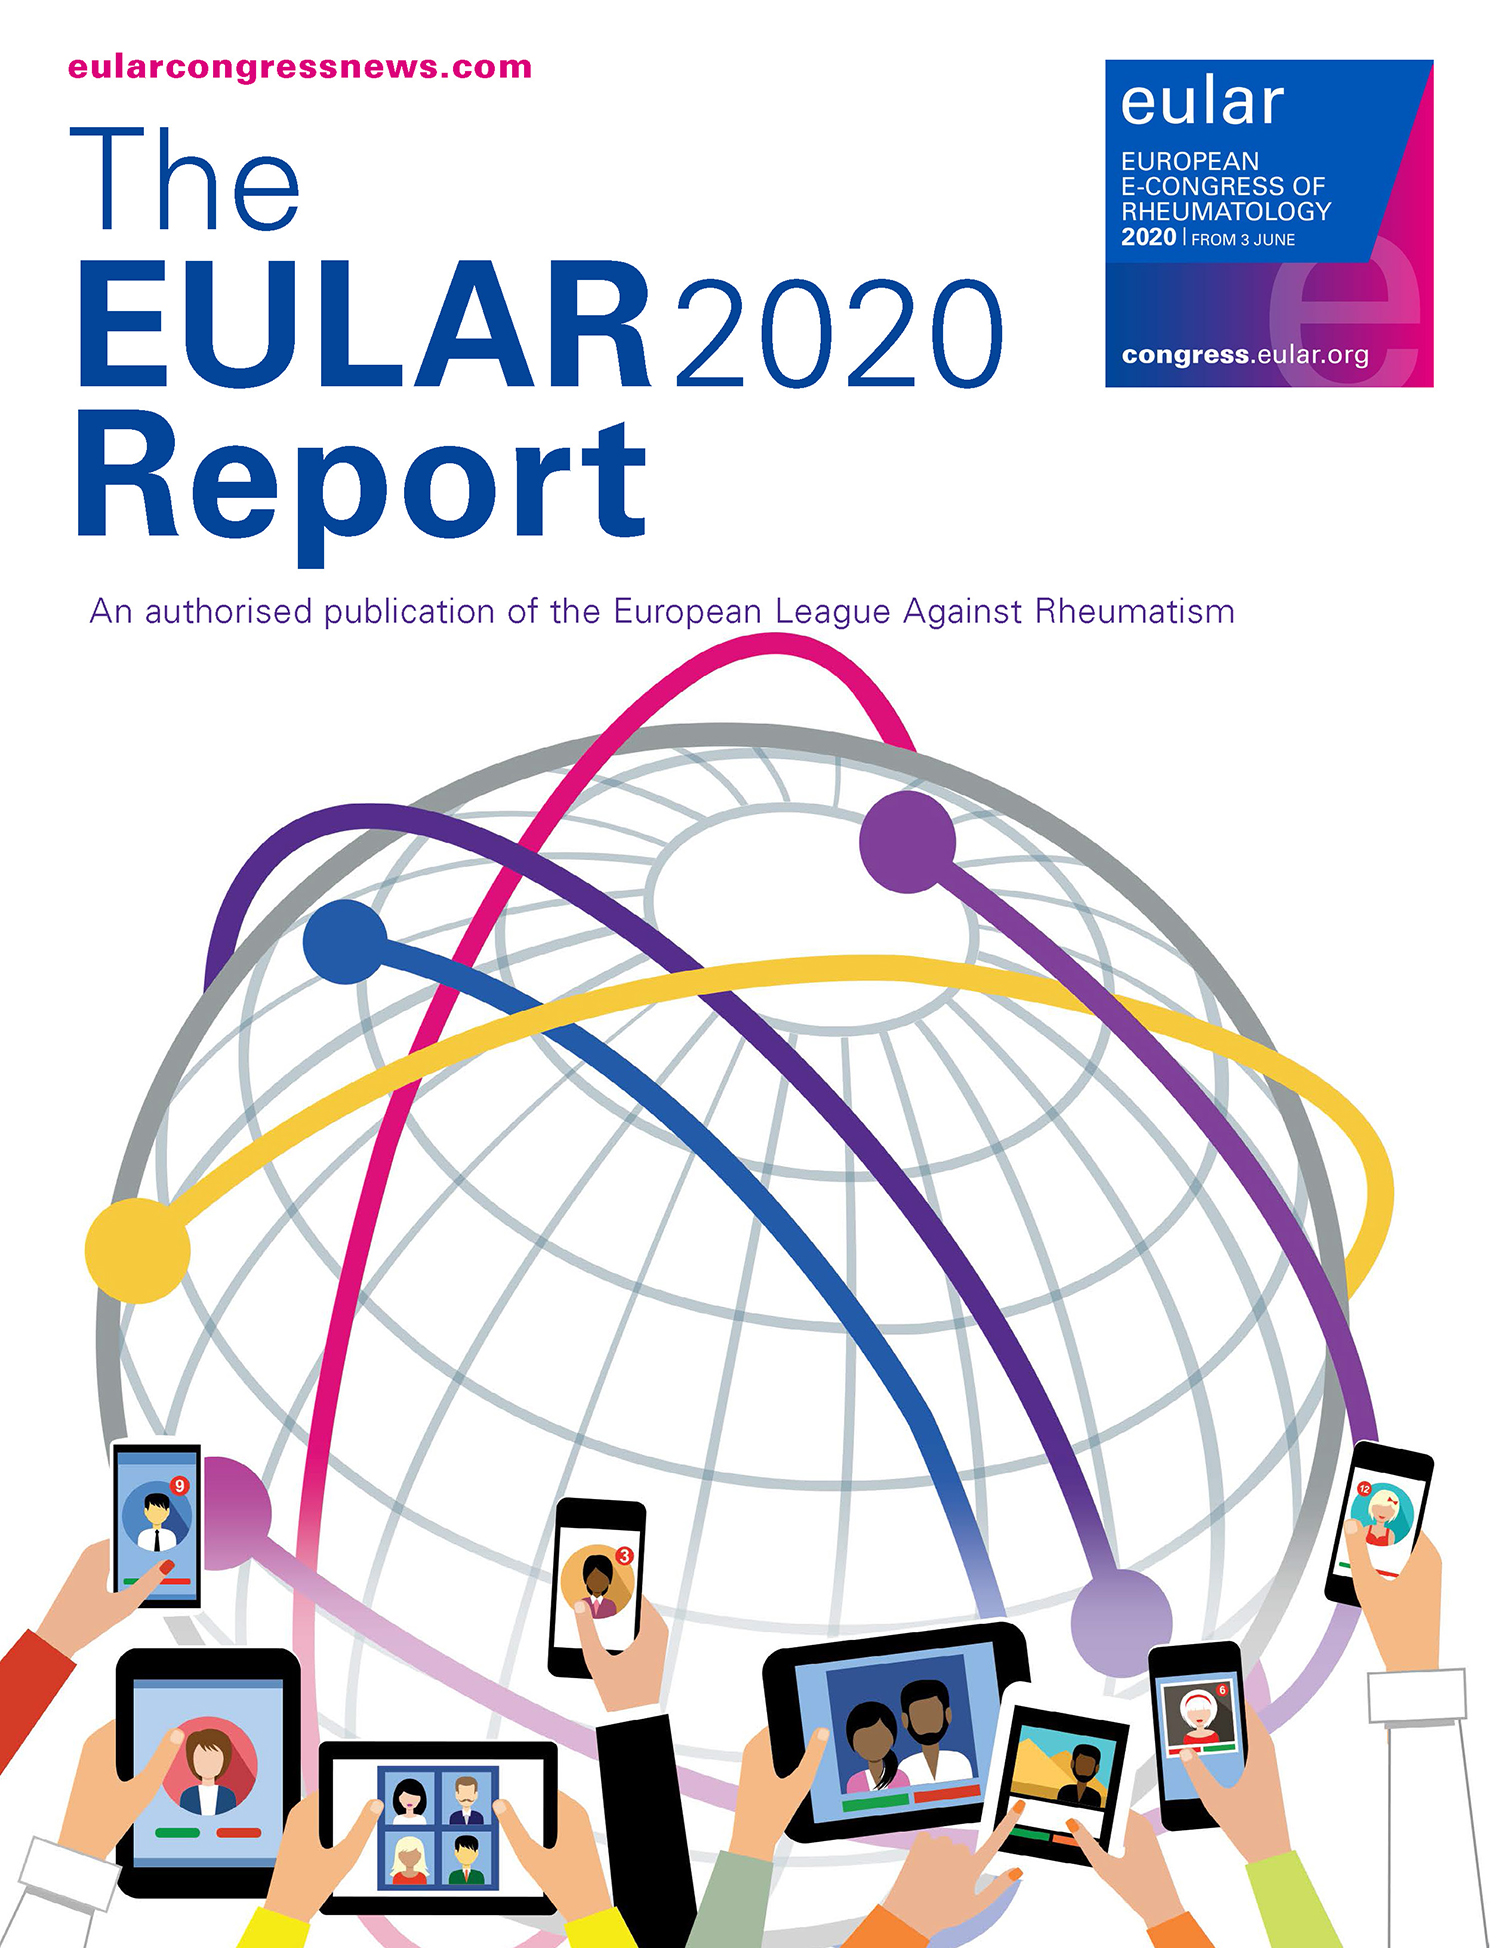 The EULAR 2020 Report